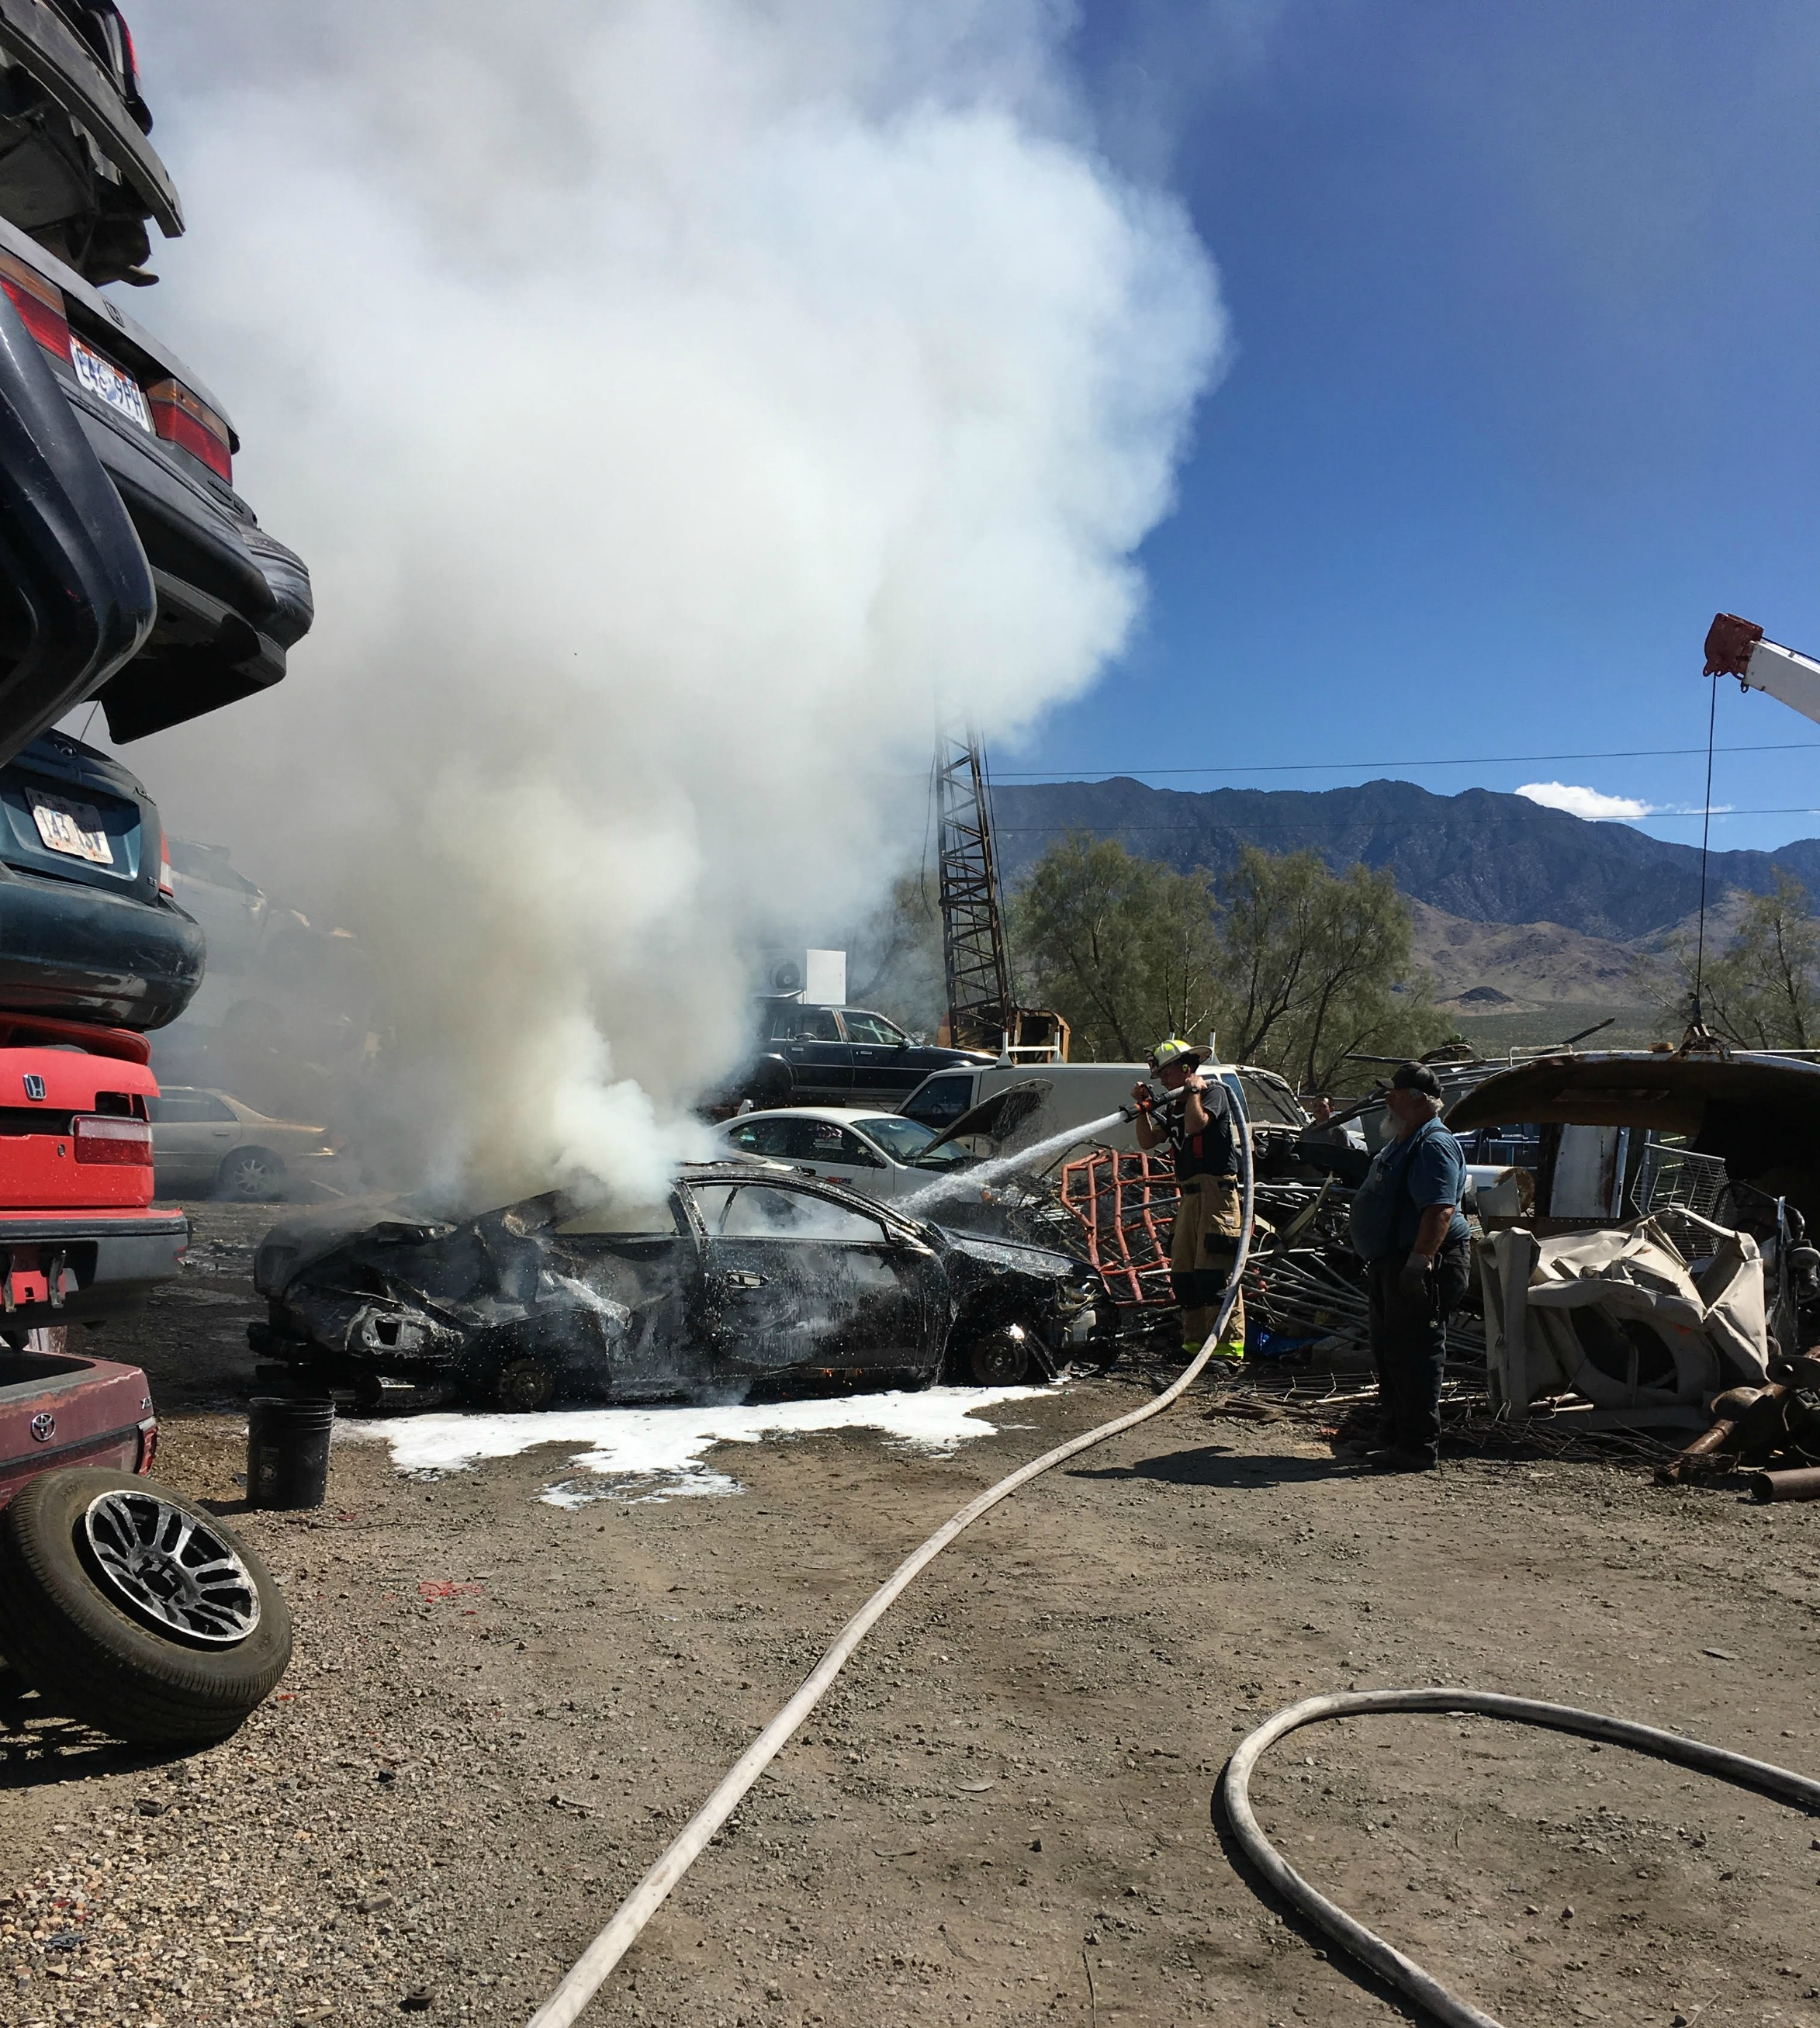 Man injured when car catches fire in salvage yard – St George News